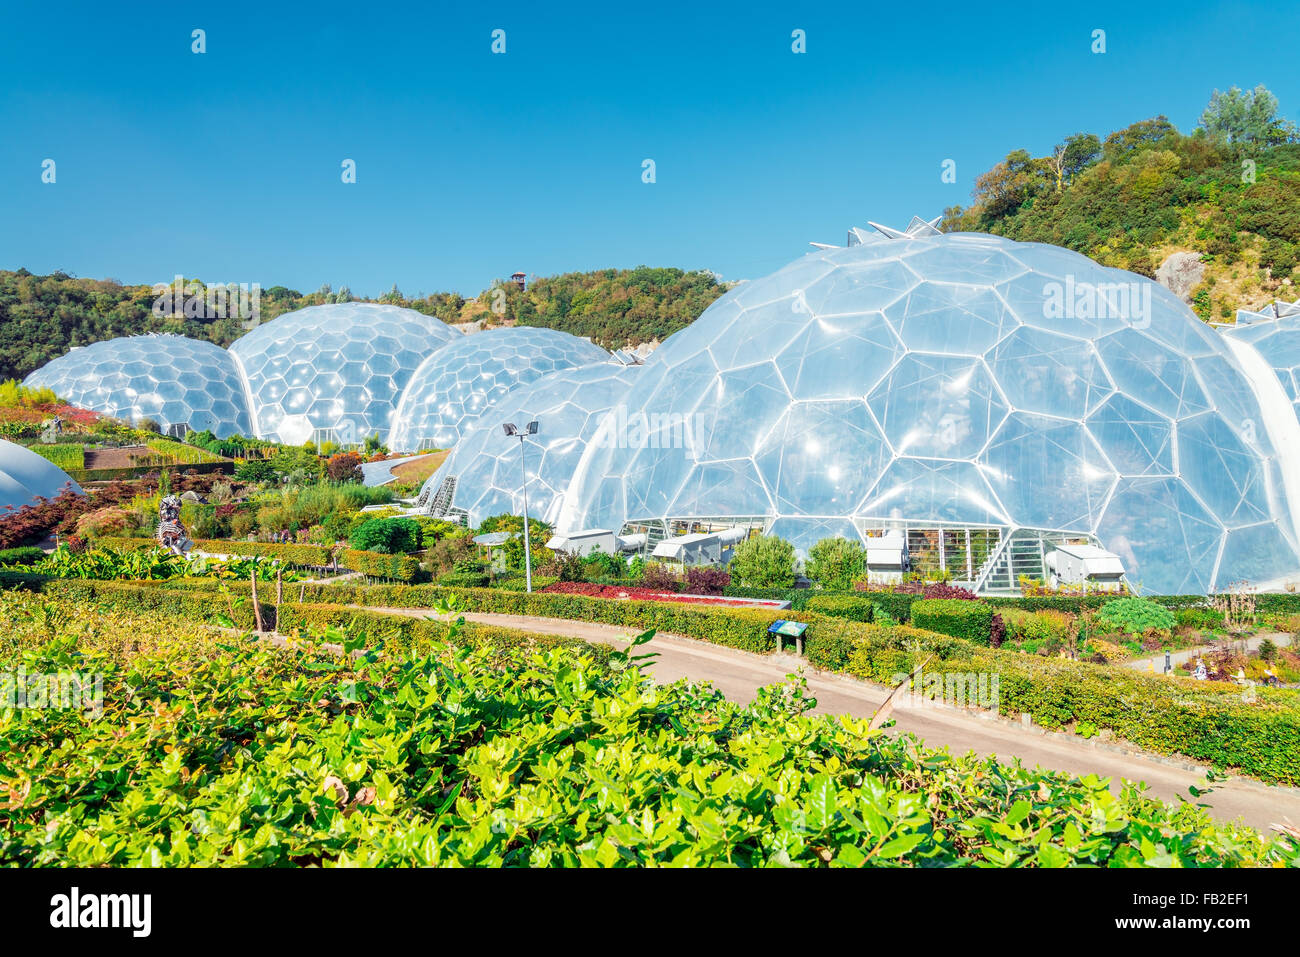 Dome of the Eden Project - Stock Image